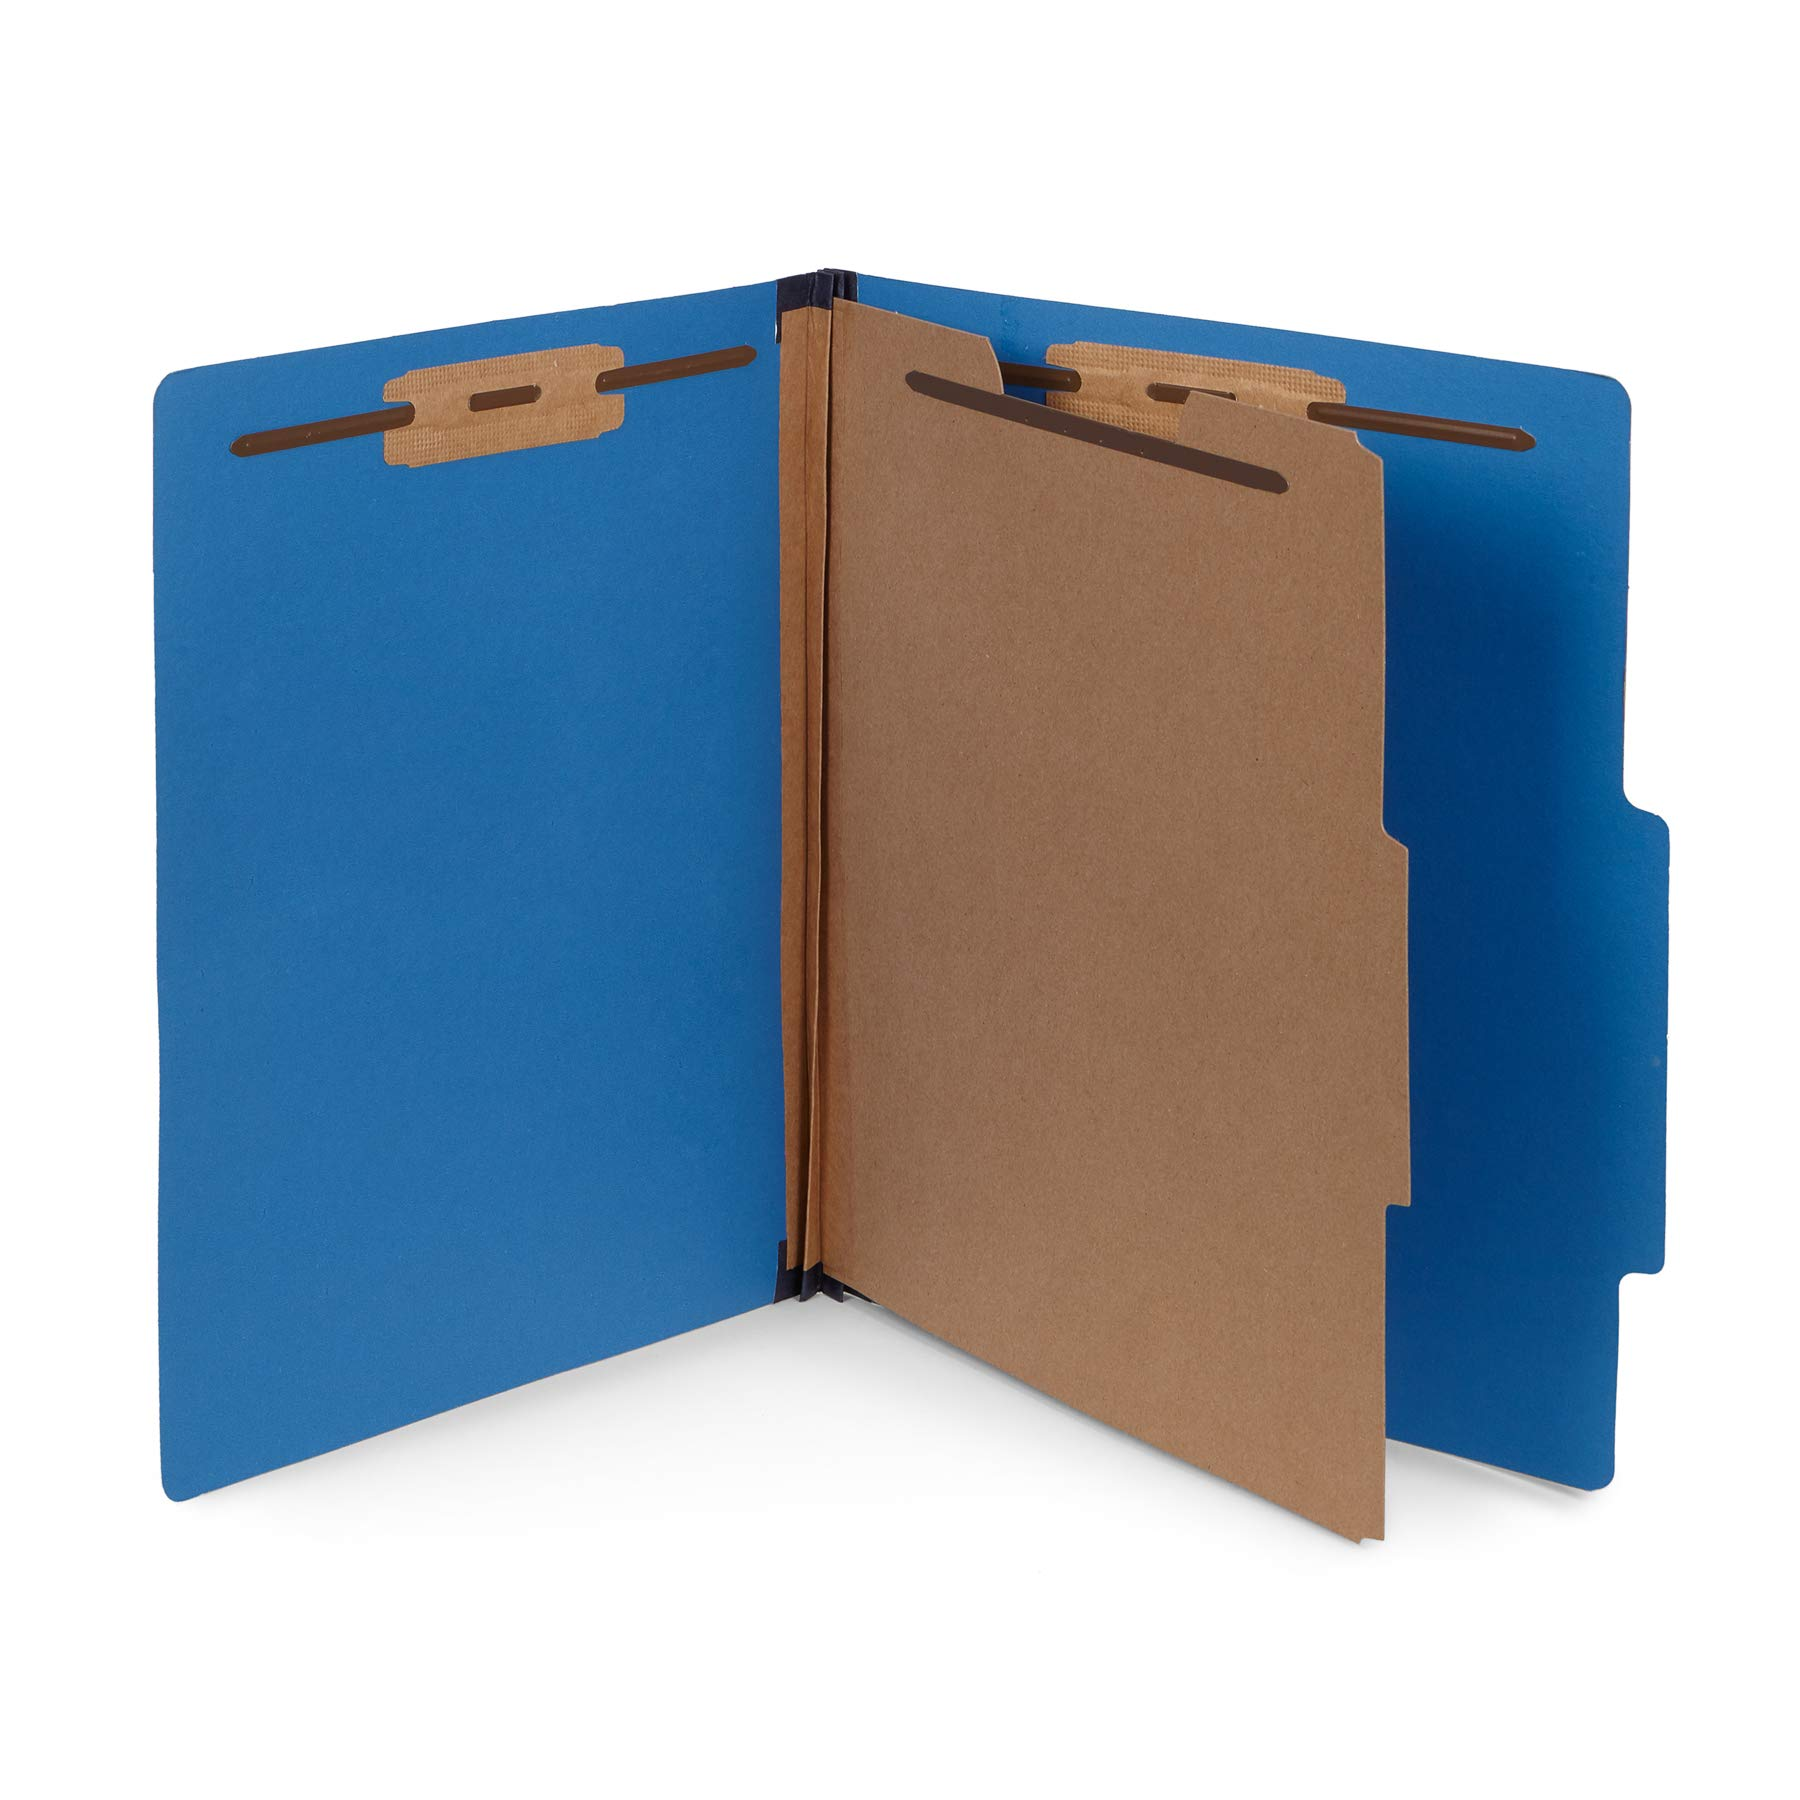 10 Dark Blue Classification Folders - 1 Divider - 2 Inch Tyvek Expansions - Durable 2 Prongs Designed to Organize Standard Medical Files, Office Reports - Letter Size, Dark Blue, 10 Pack by Blue Summit Supplies